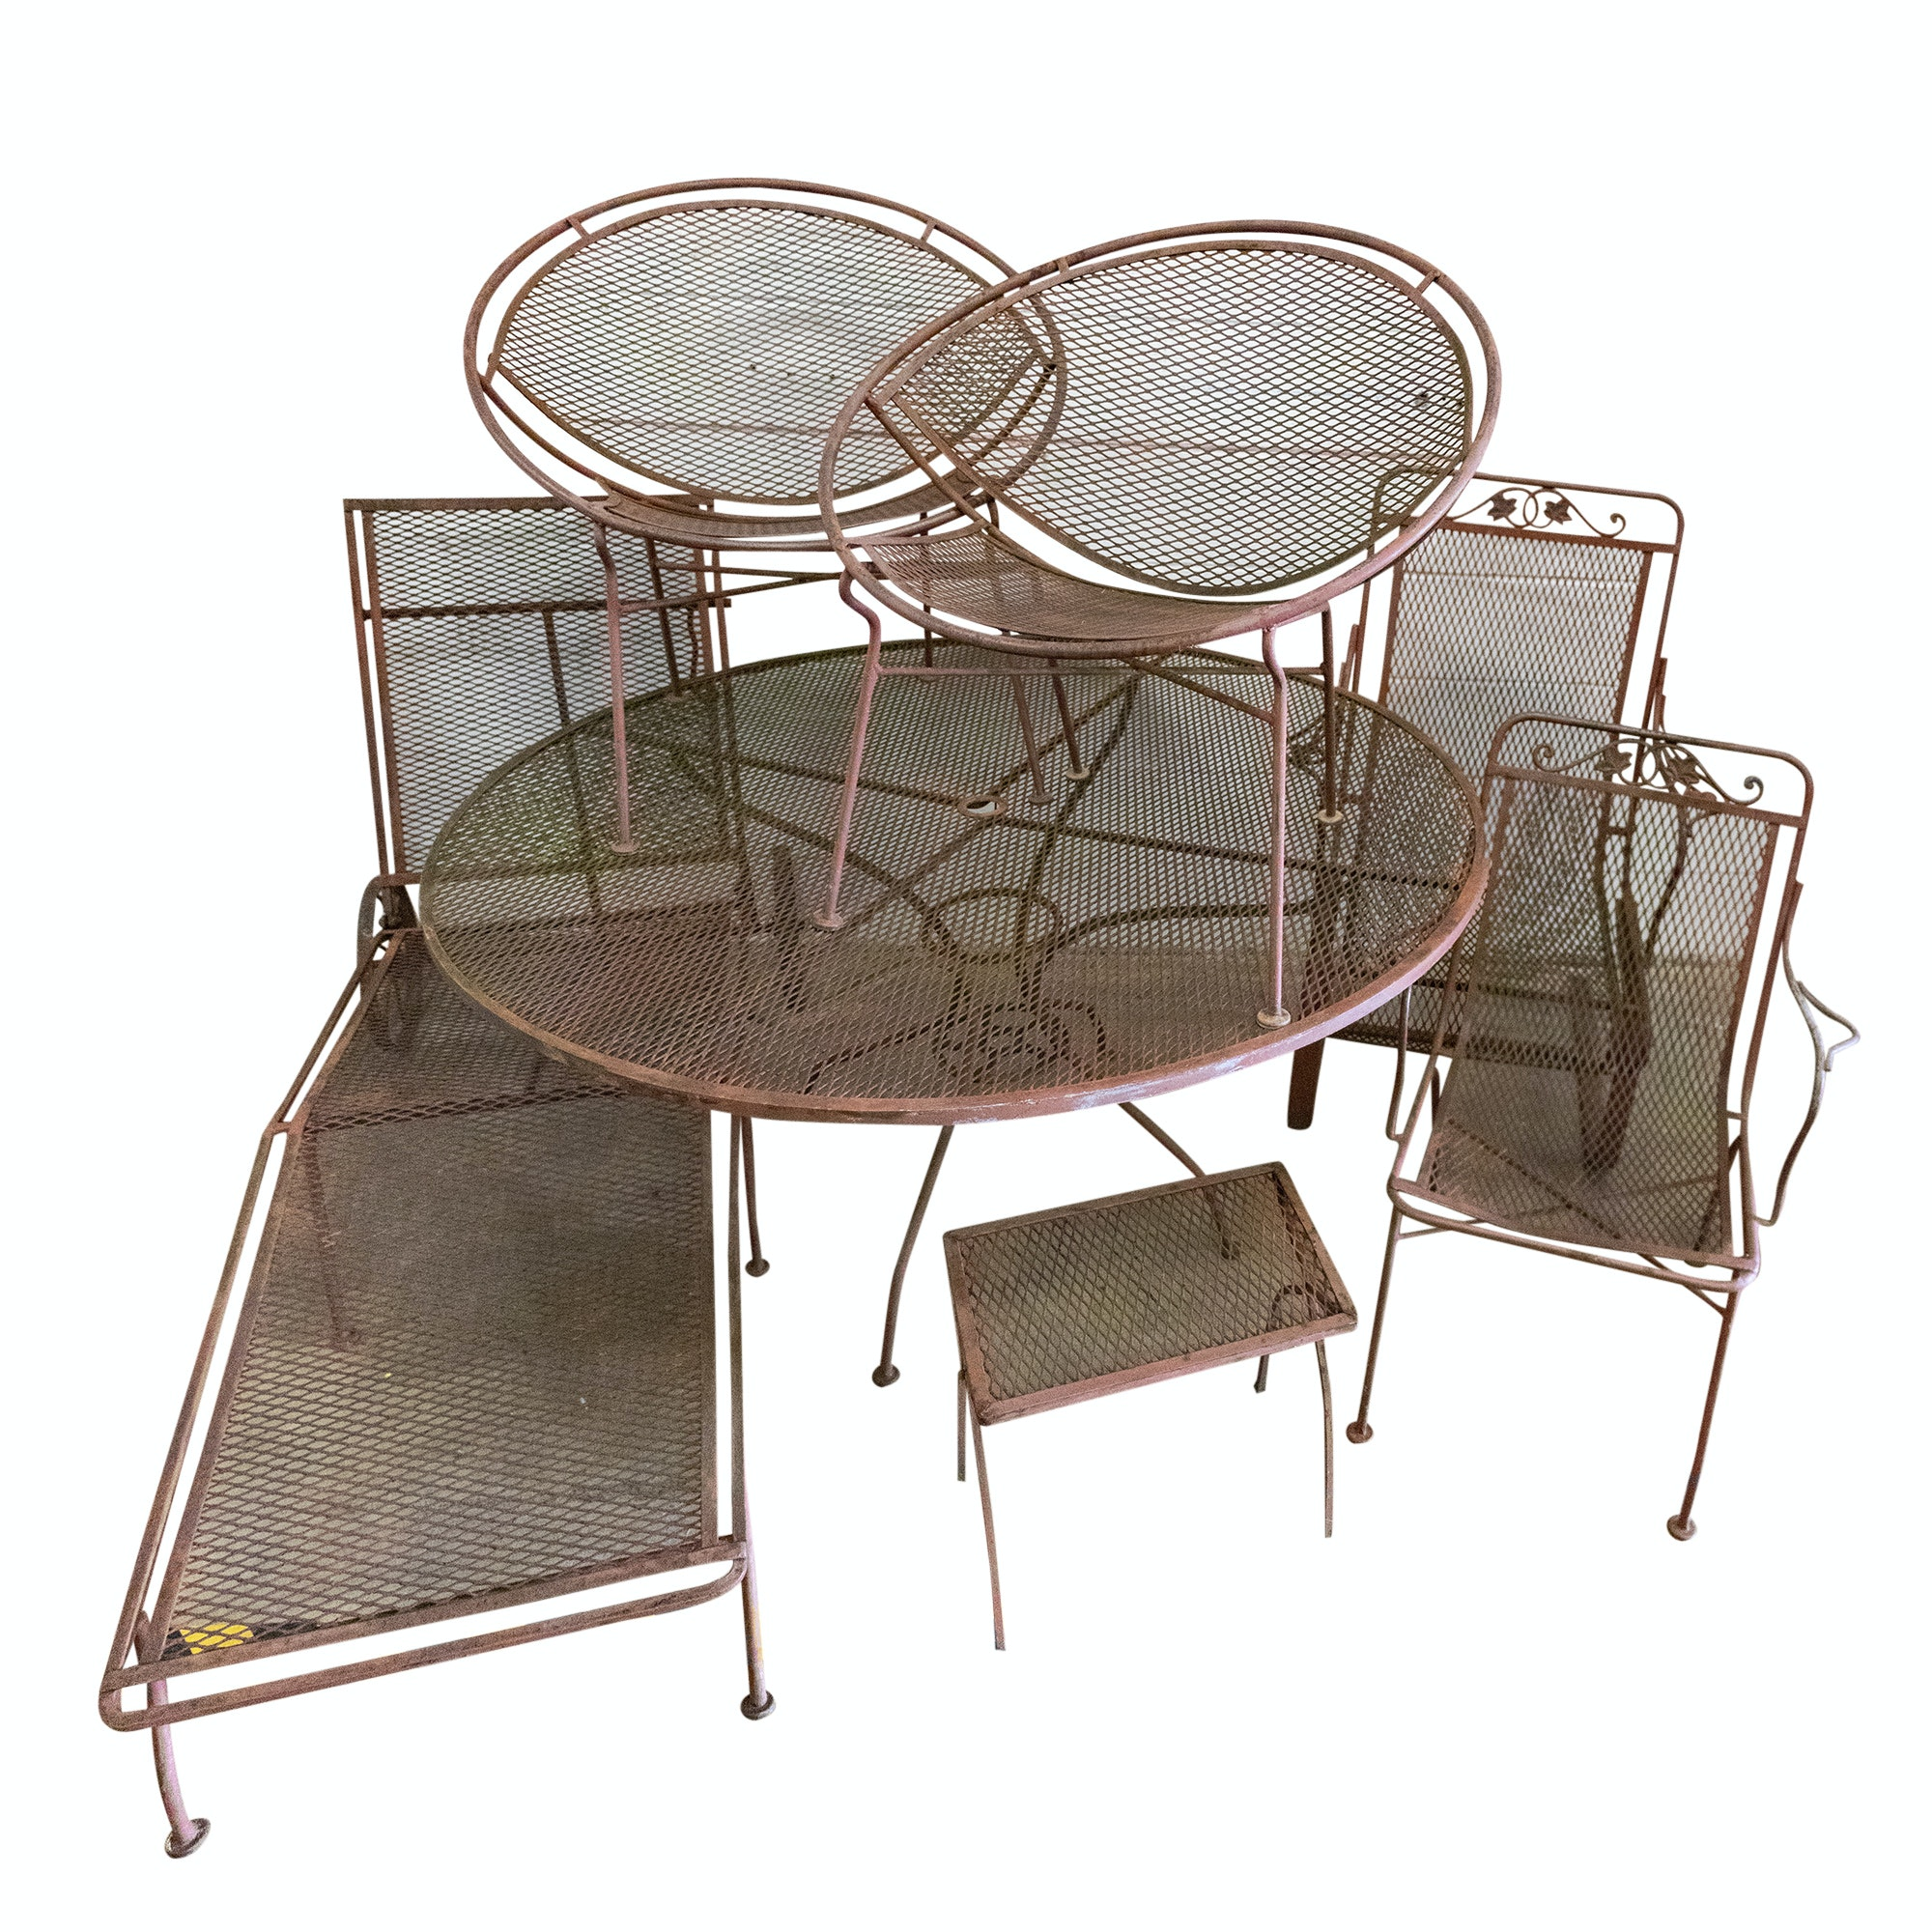 Meshed Metal Patio Furniture Set